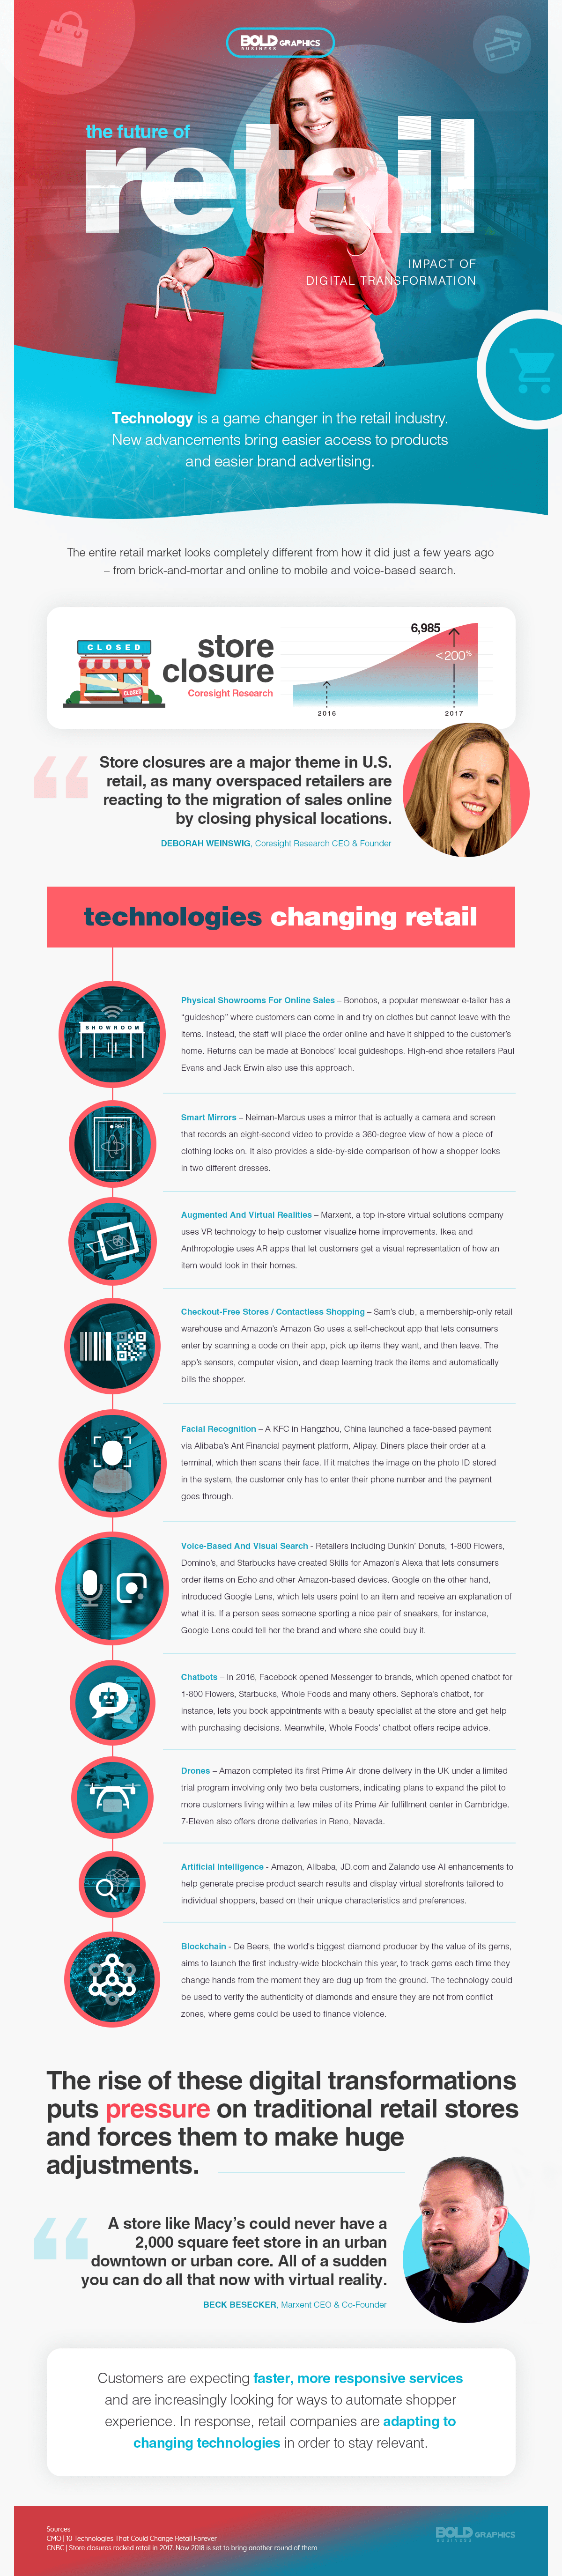 Future of Retail and Impacts of digital technology Infographic